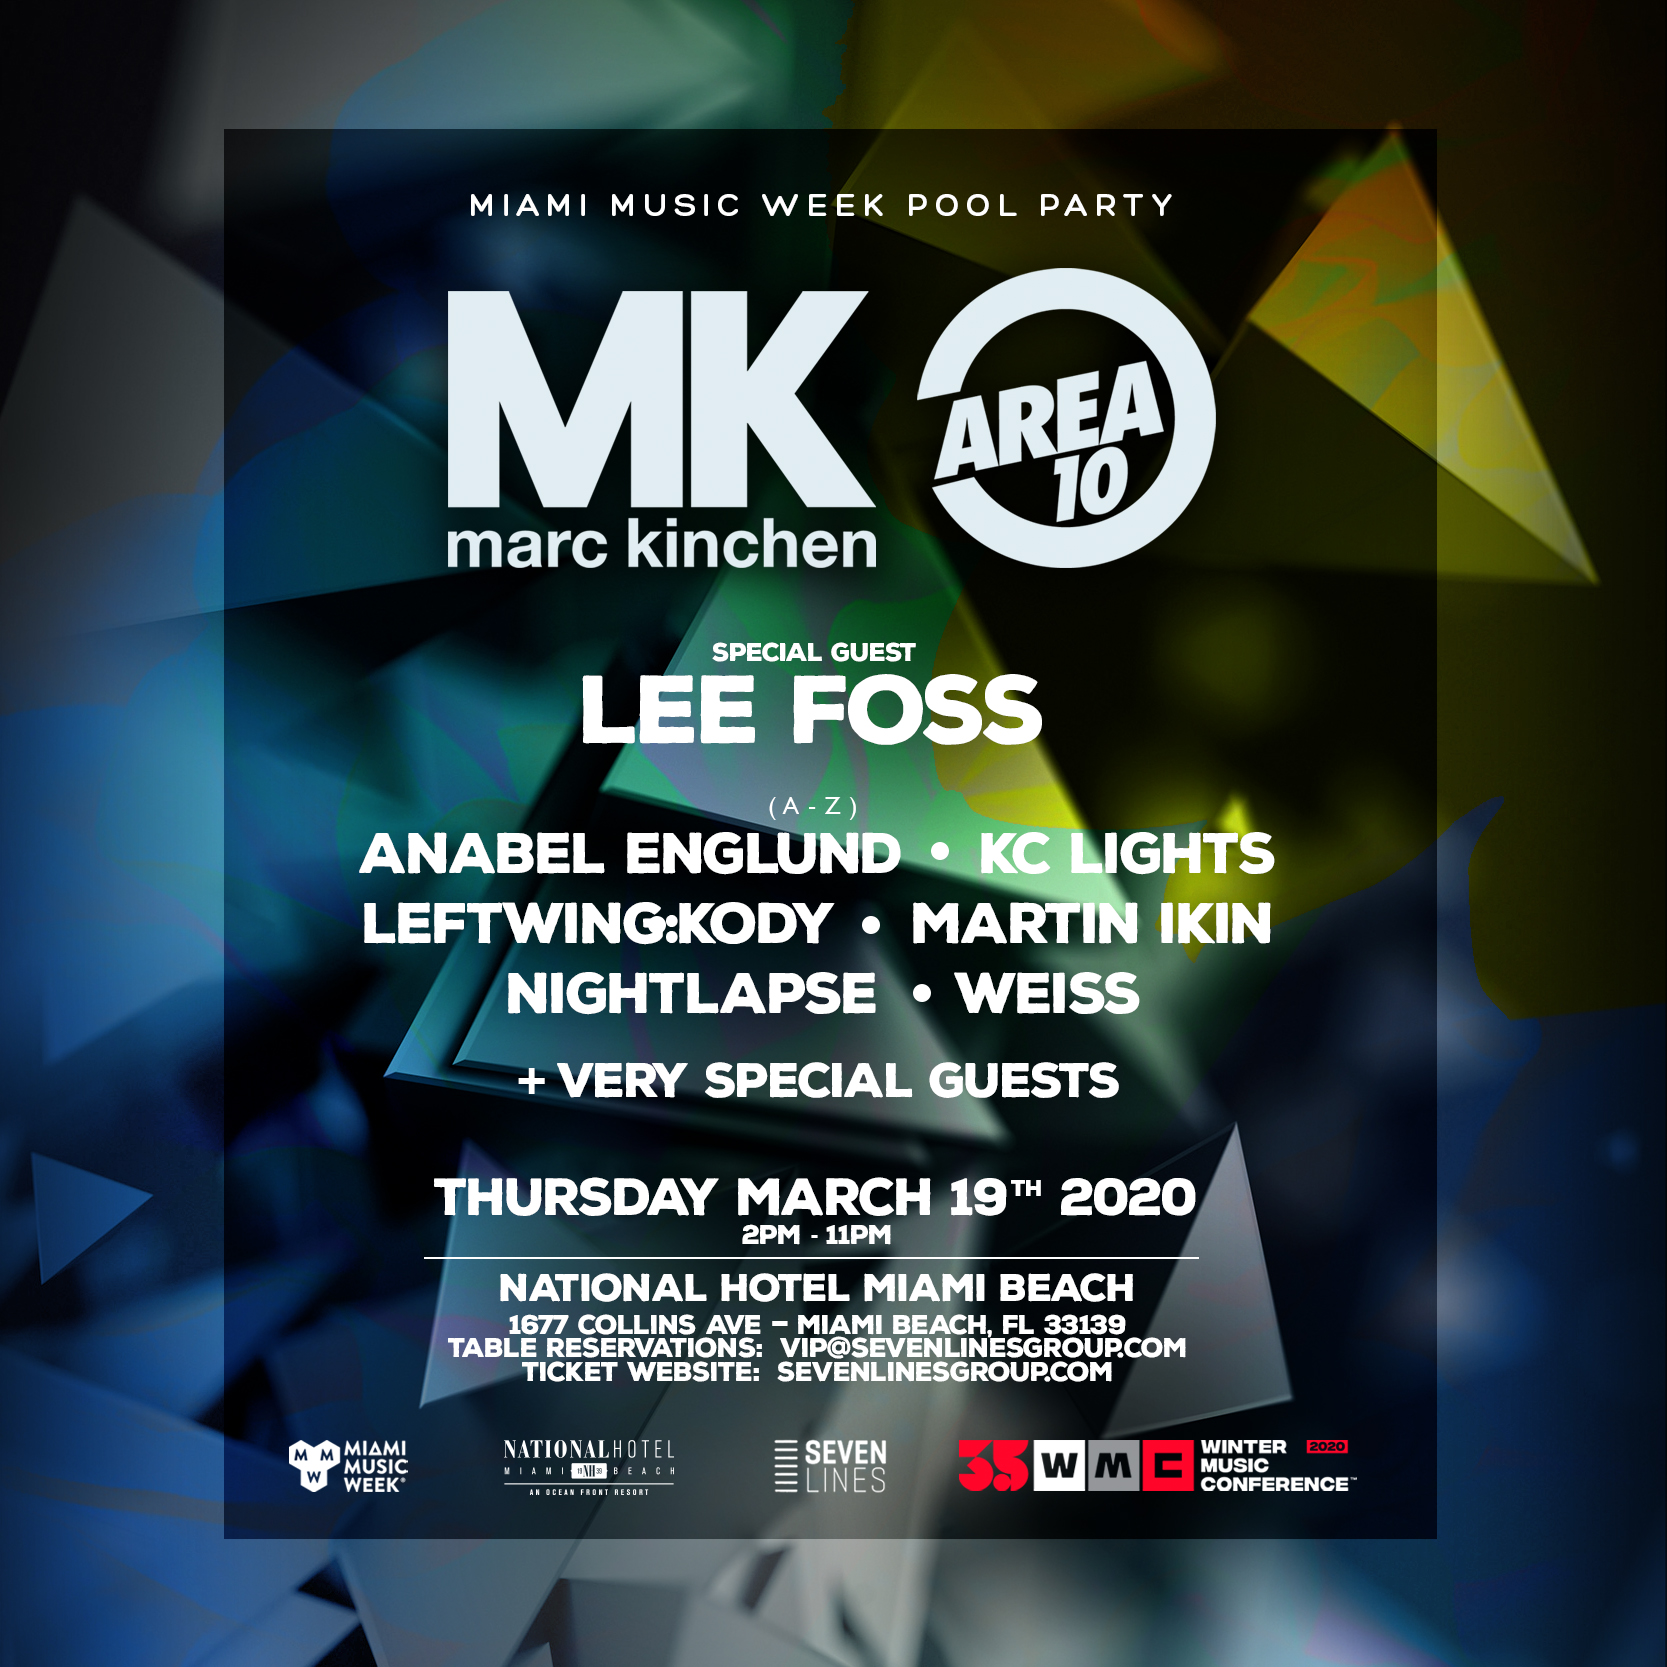 MK Area 10 Pool Party Flyer